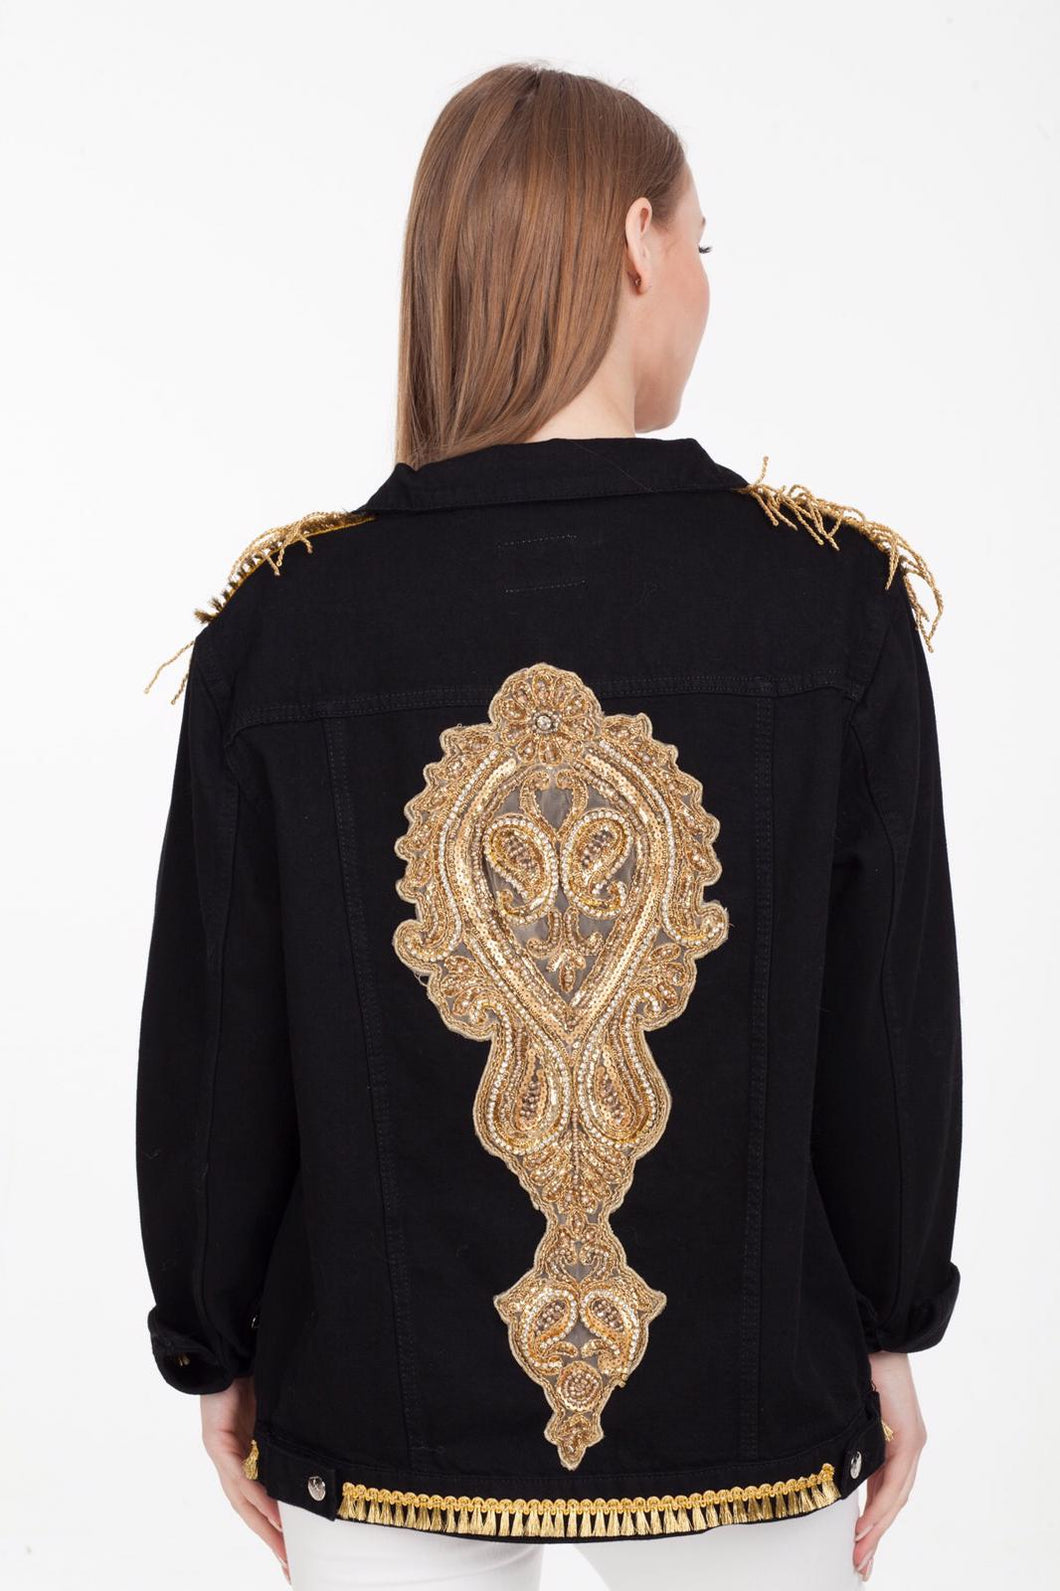 BAJJARI Jeans Jacket for Women - Black with Back and Shoulder Decorations